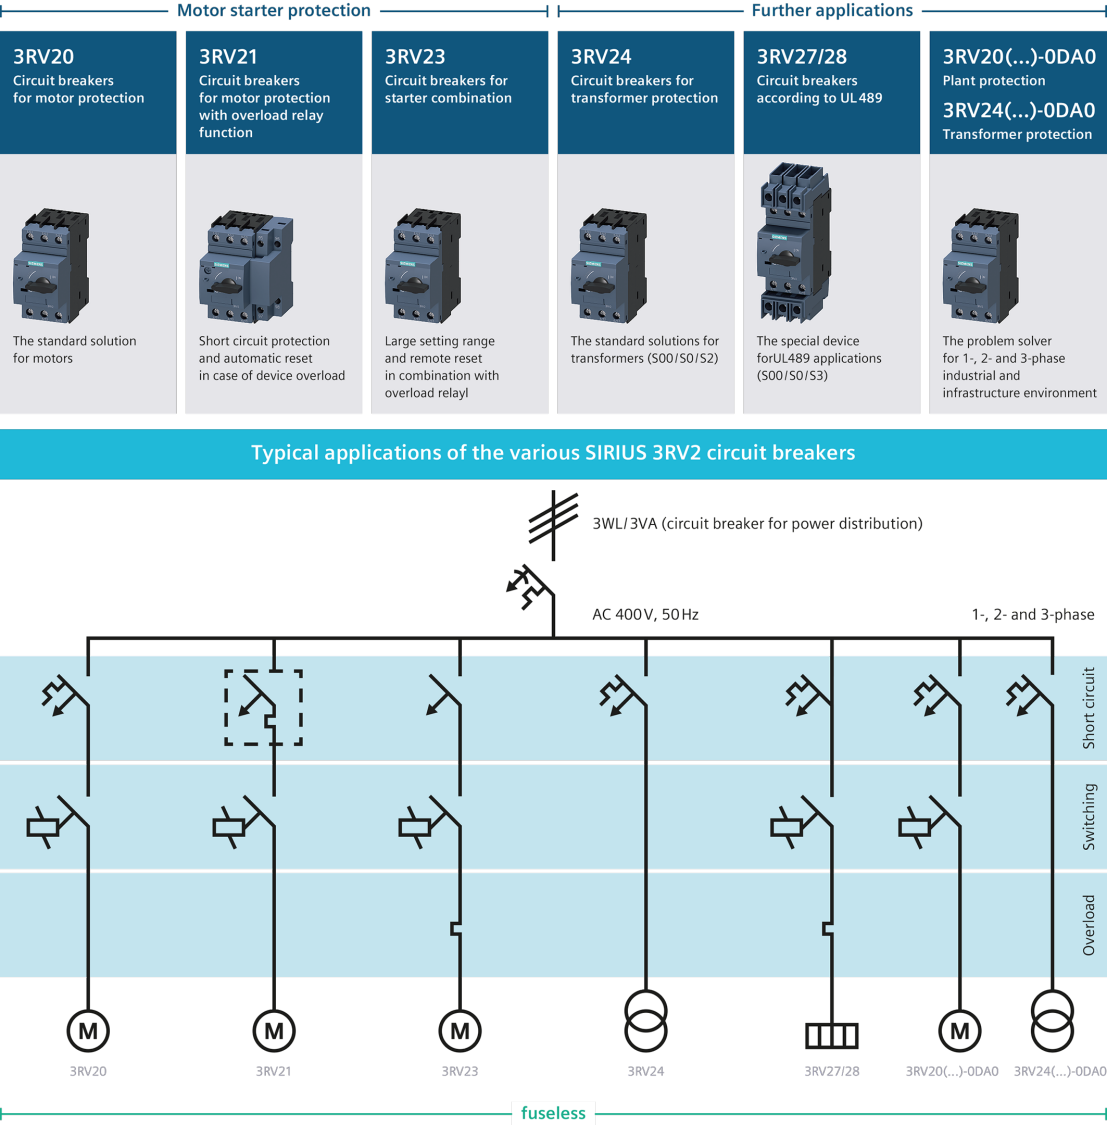 Overview after the typical application of SIRIUS 3RV20/21/23/24 motor starter protectors and SIRIUS 3RV27/28 circuit breakers